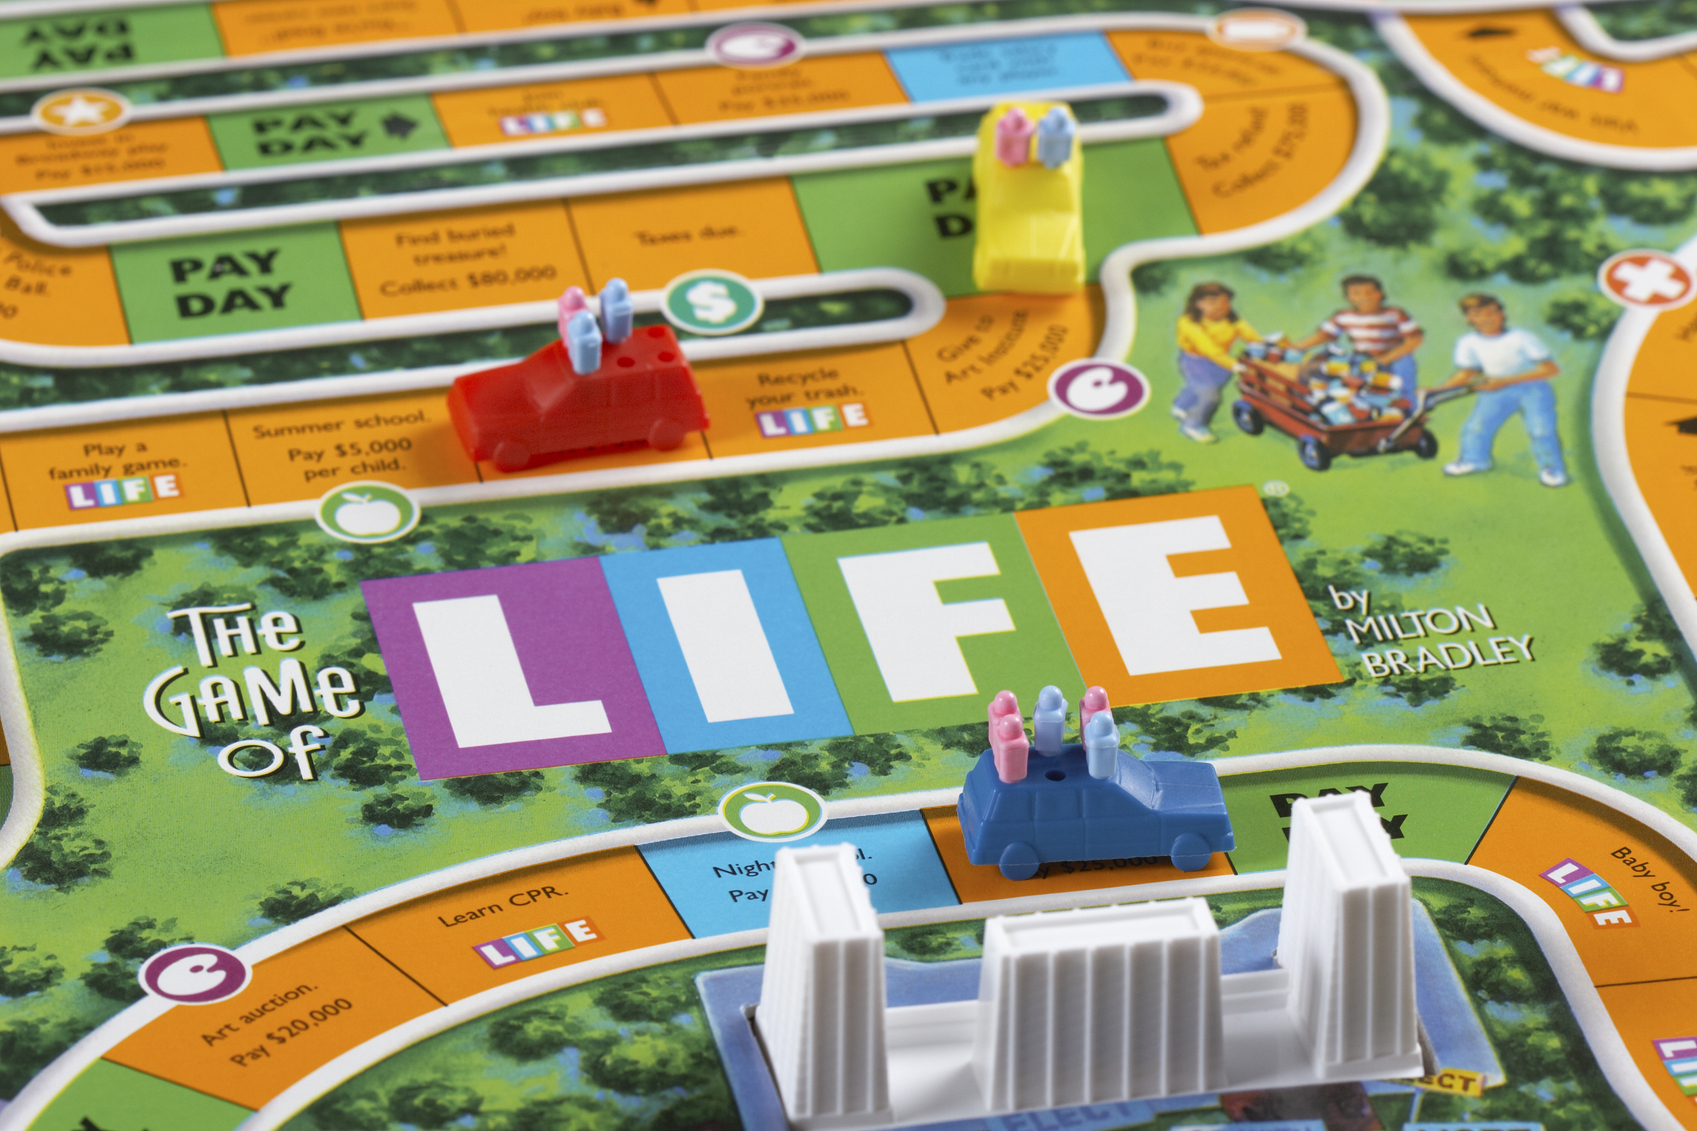 The Game Of Life Instructions And Rules Lovetoknow Join a community of players and streamers. https boardgames lovetoknow com the game of life instructions